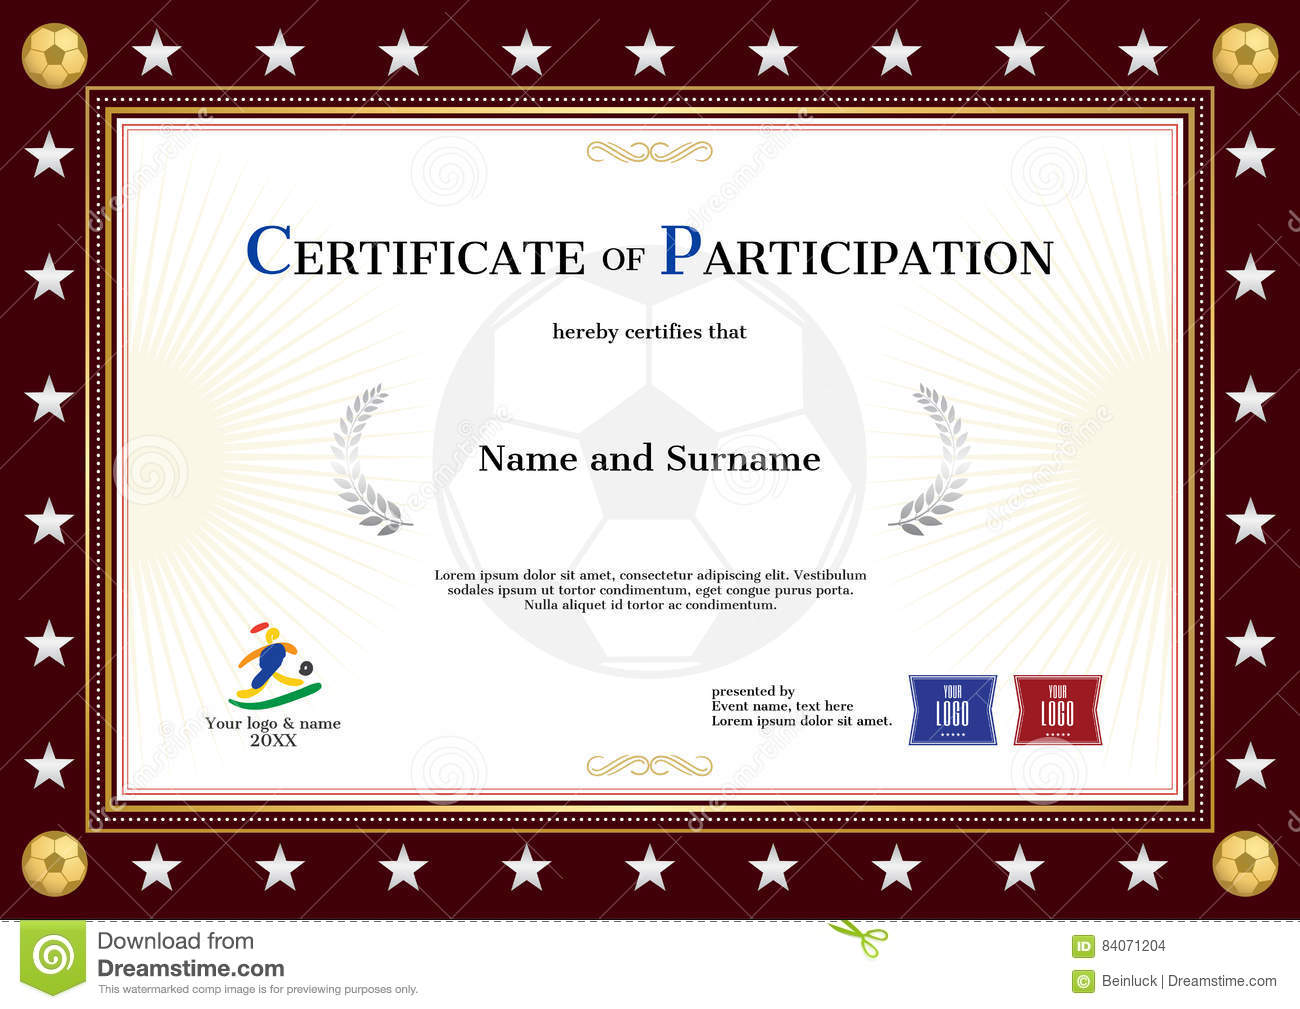 Certificate Of Participation Template In Sport Theme For Footbal – Certificate of Participation Template